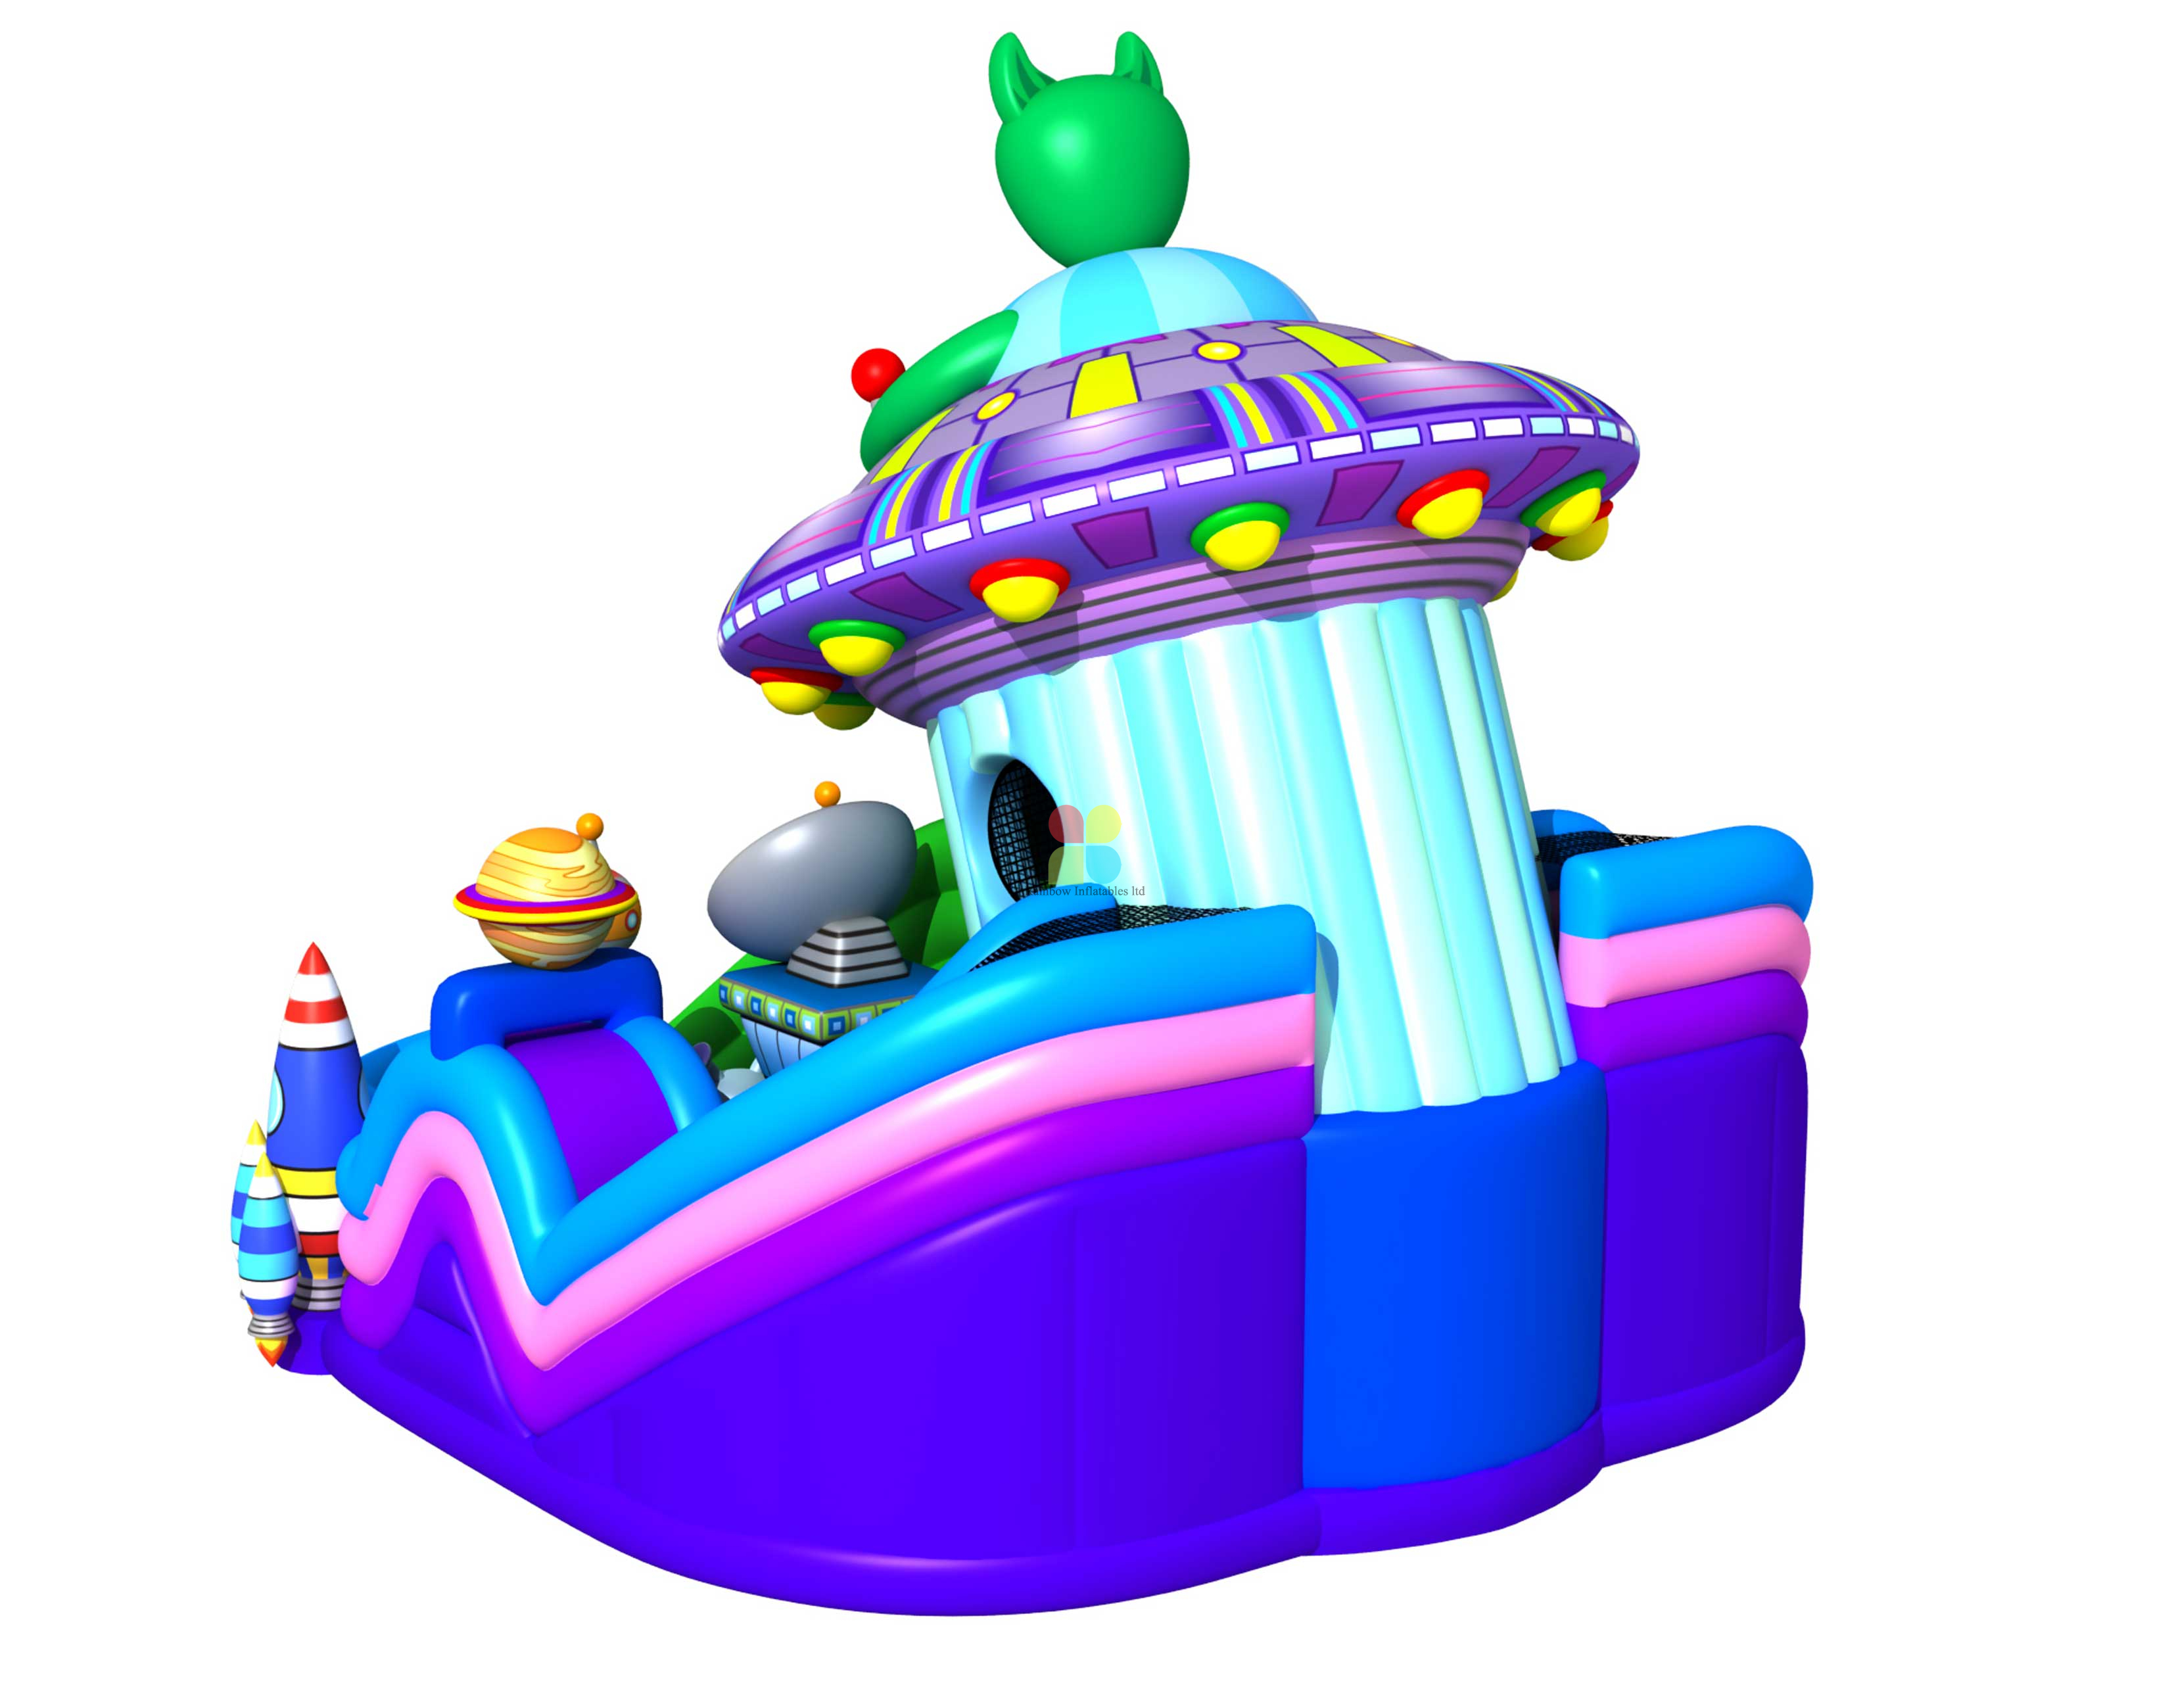 Inflatable Outer Space Ship Theme Slide Castle The Outerspace Expore Science Theme Slide Obstacle